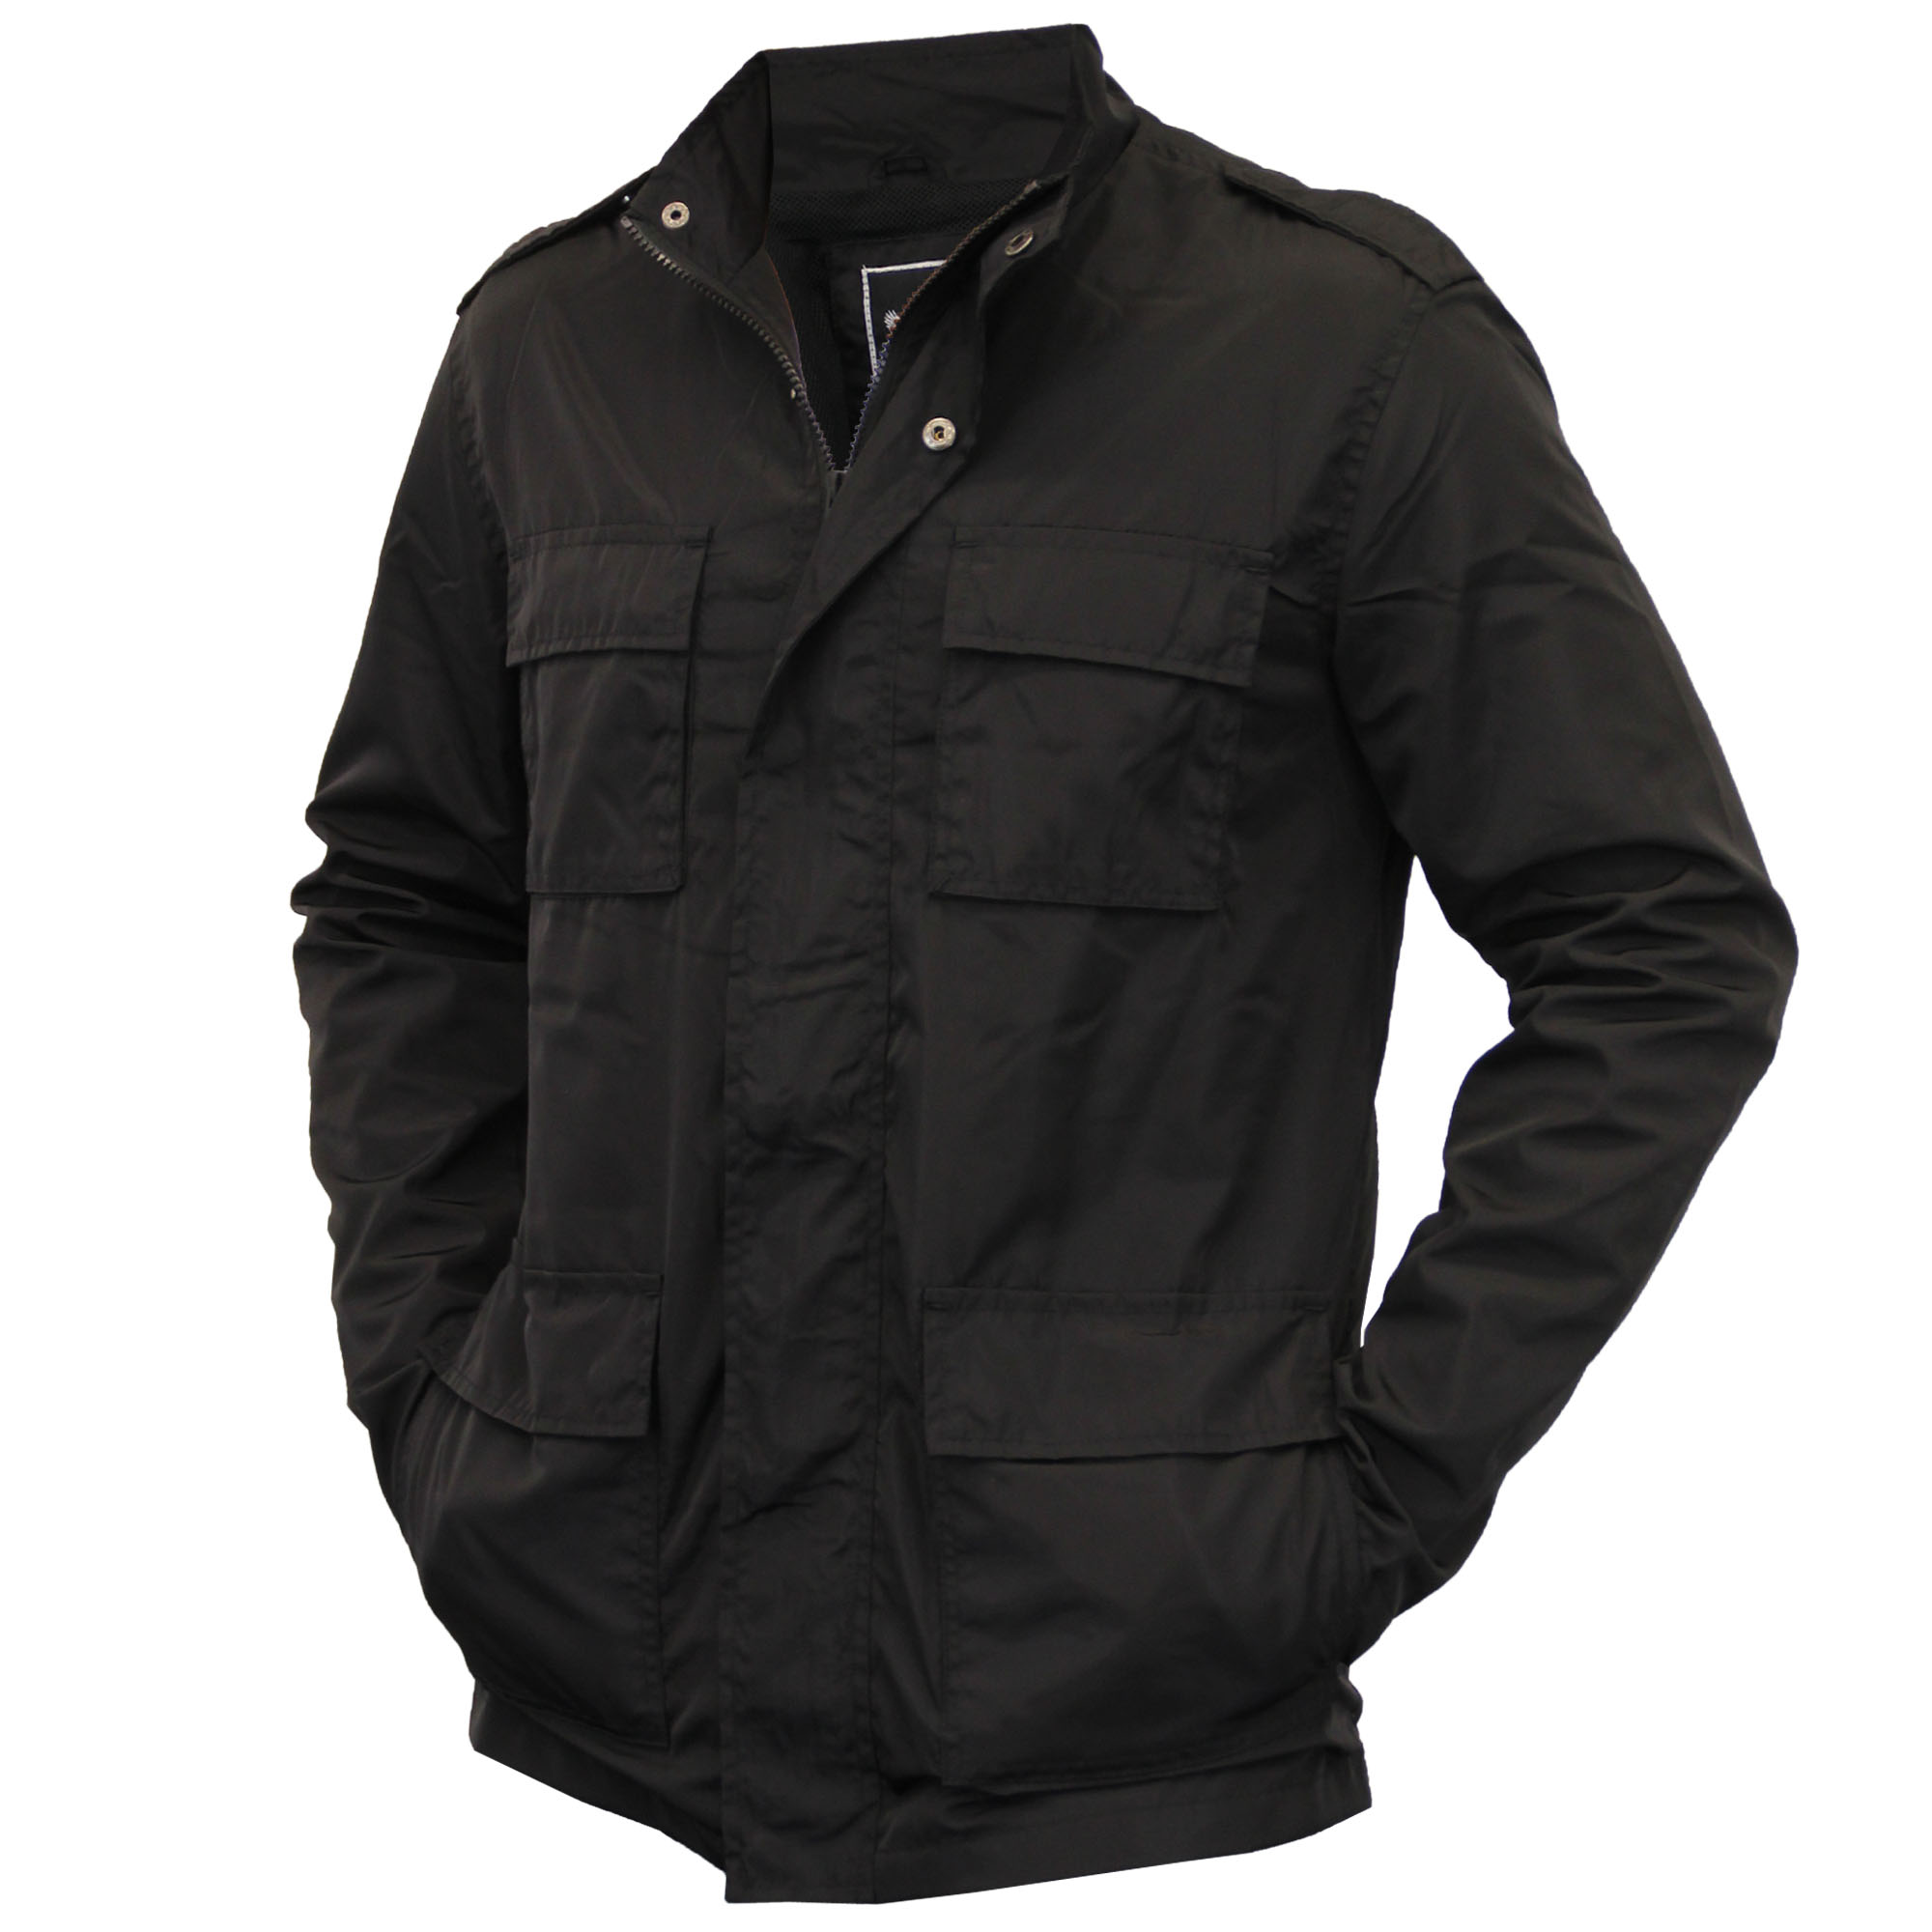 Military jackets generally come in neutral colors like grey, black, beige or olive green. They can be cargo jackets, pea coats, or even Michael Jackson style majorette or band jackets. Fashionable companies like Hollister and Ralph Lauren often base their designs on the designs of the actual military.